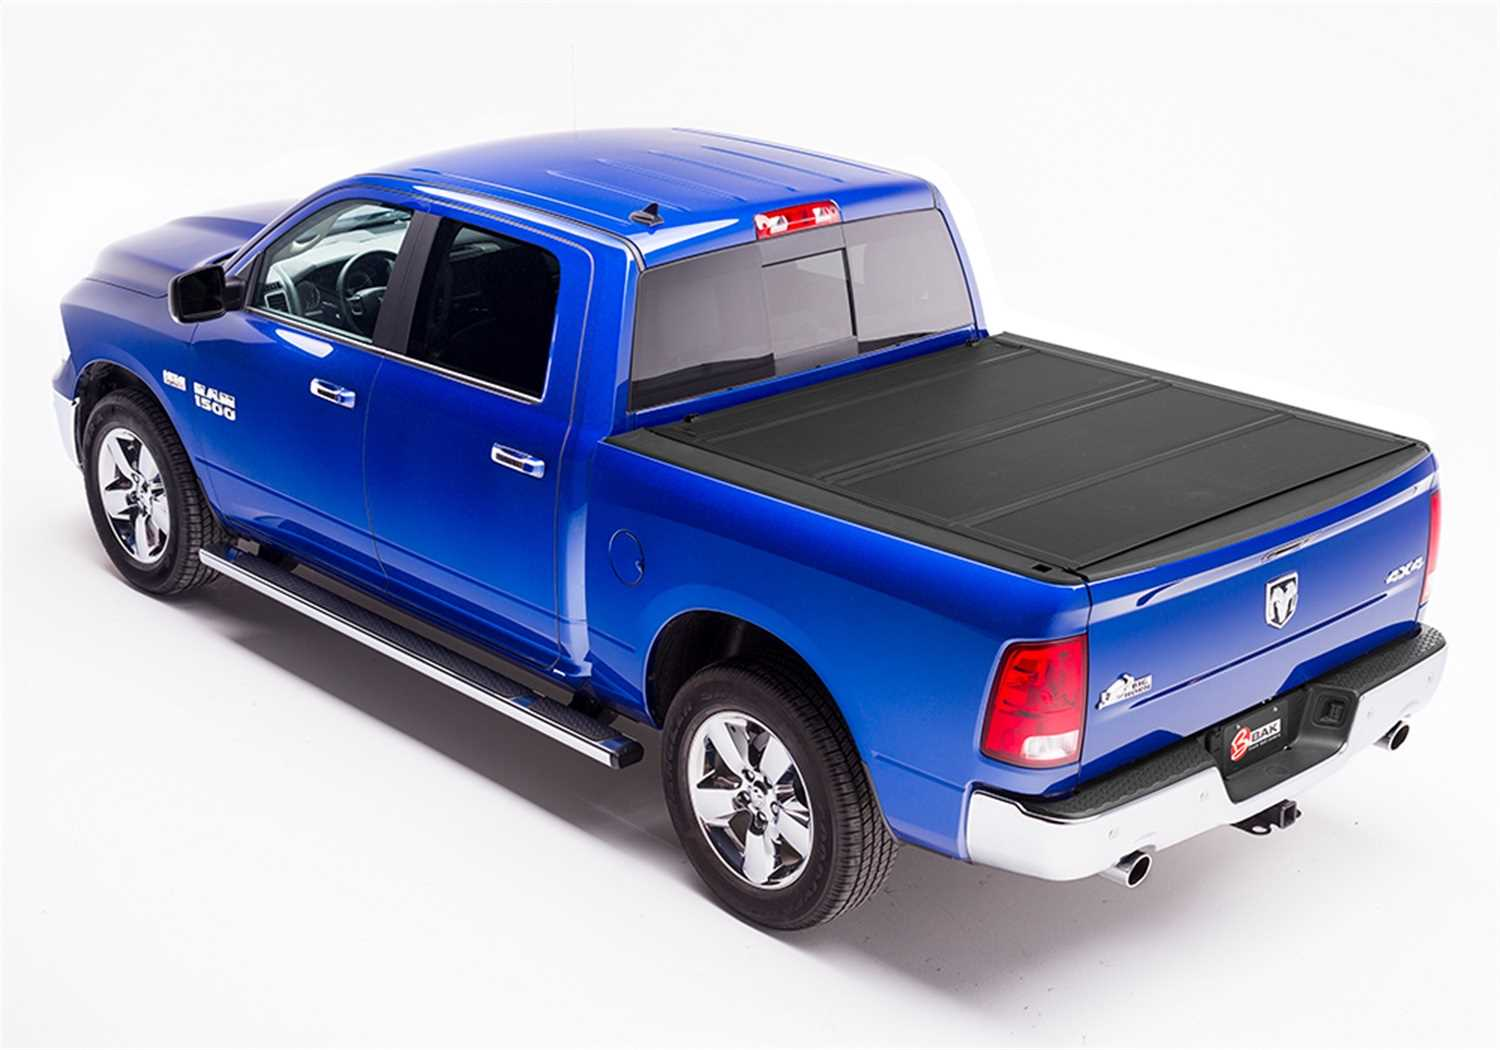 448207 Bak Industries BAKFlip MX4 Hard Folding Truck Bed Cover